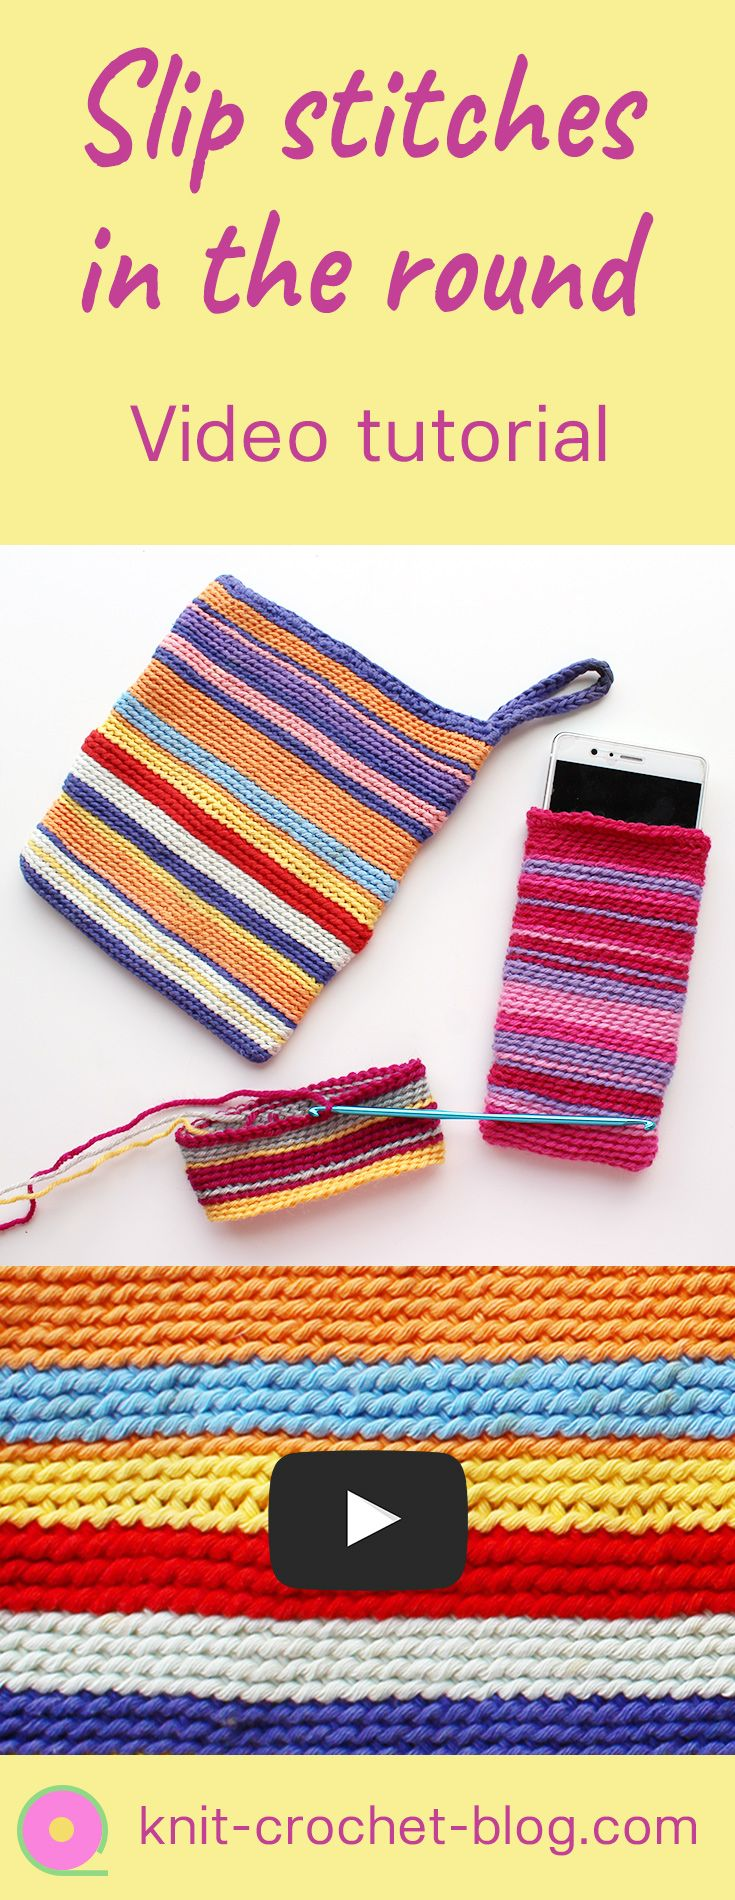 Easy tutorial for slip stitch crochet in the round. Create easy colorful crochet projects. You can use the technique for purses, bags, phone cases, tablet covers, pot holders, coasters and many more. Step by step instructions of the technique. Suitable for beginners.